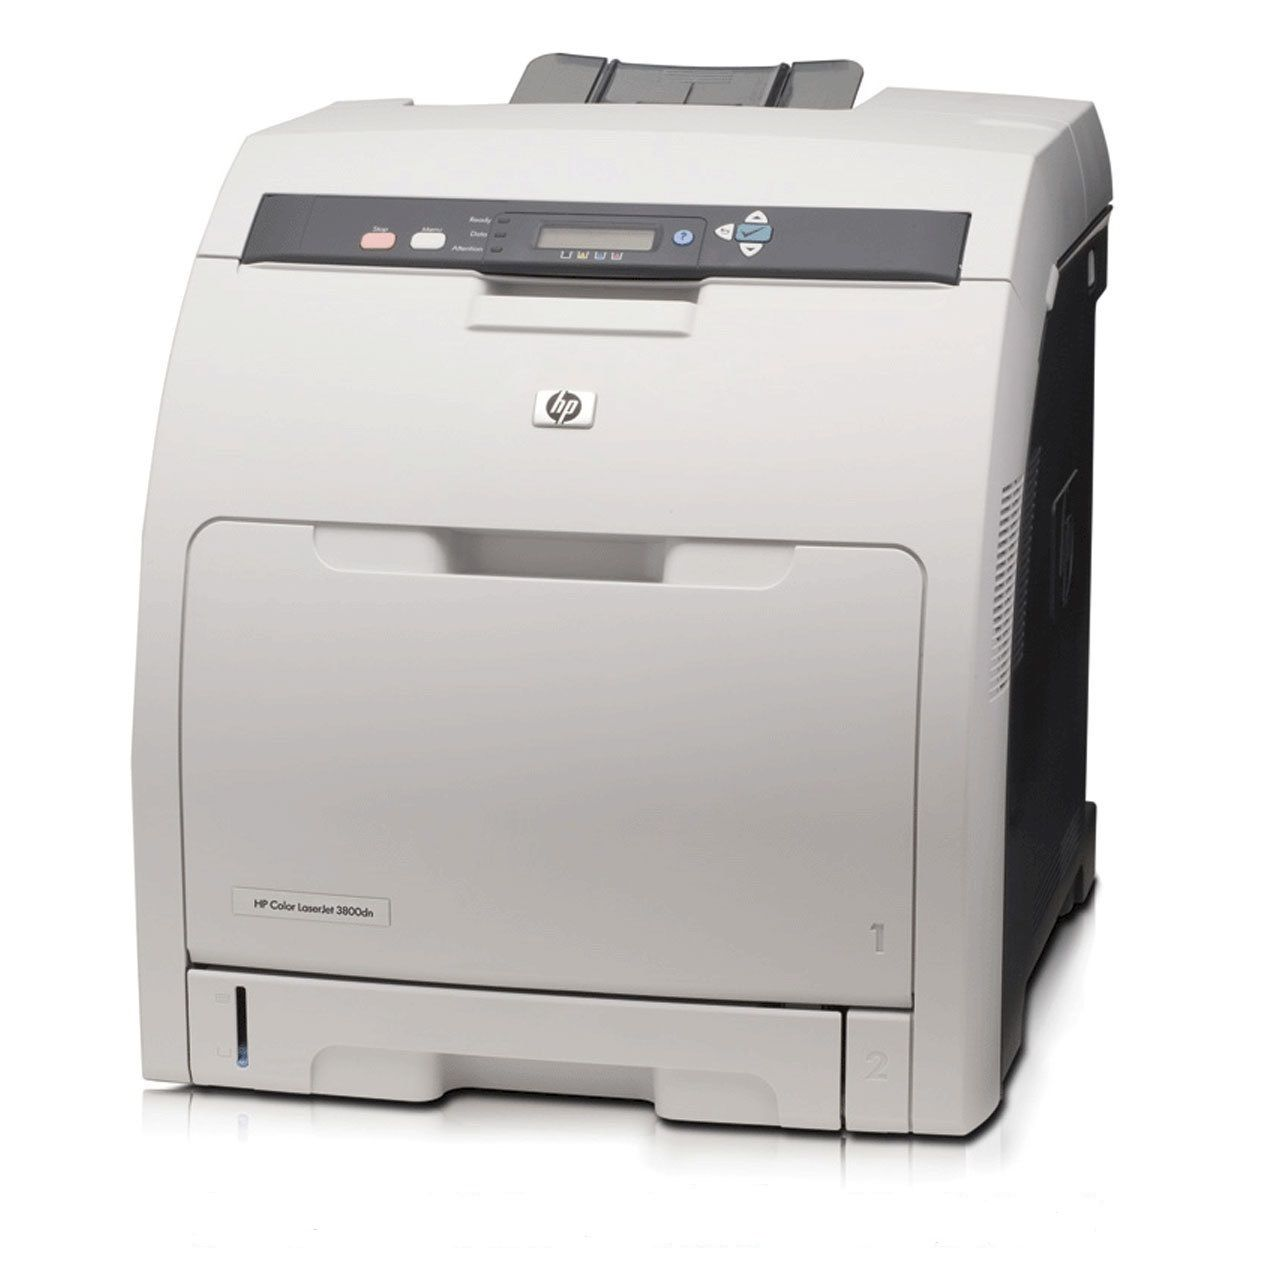 hp color laserjet 3600dn farb laserdrucker duplex lan. Black Bedroom Furniture Sets. Home Design Ideas